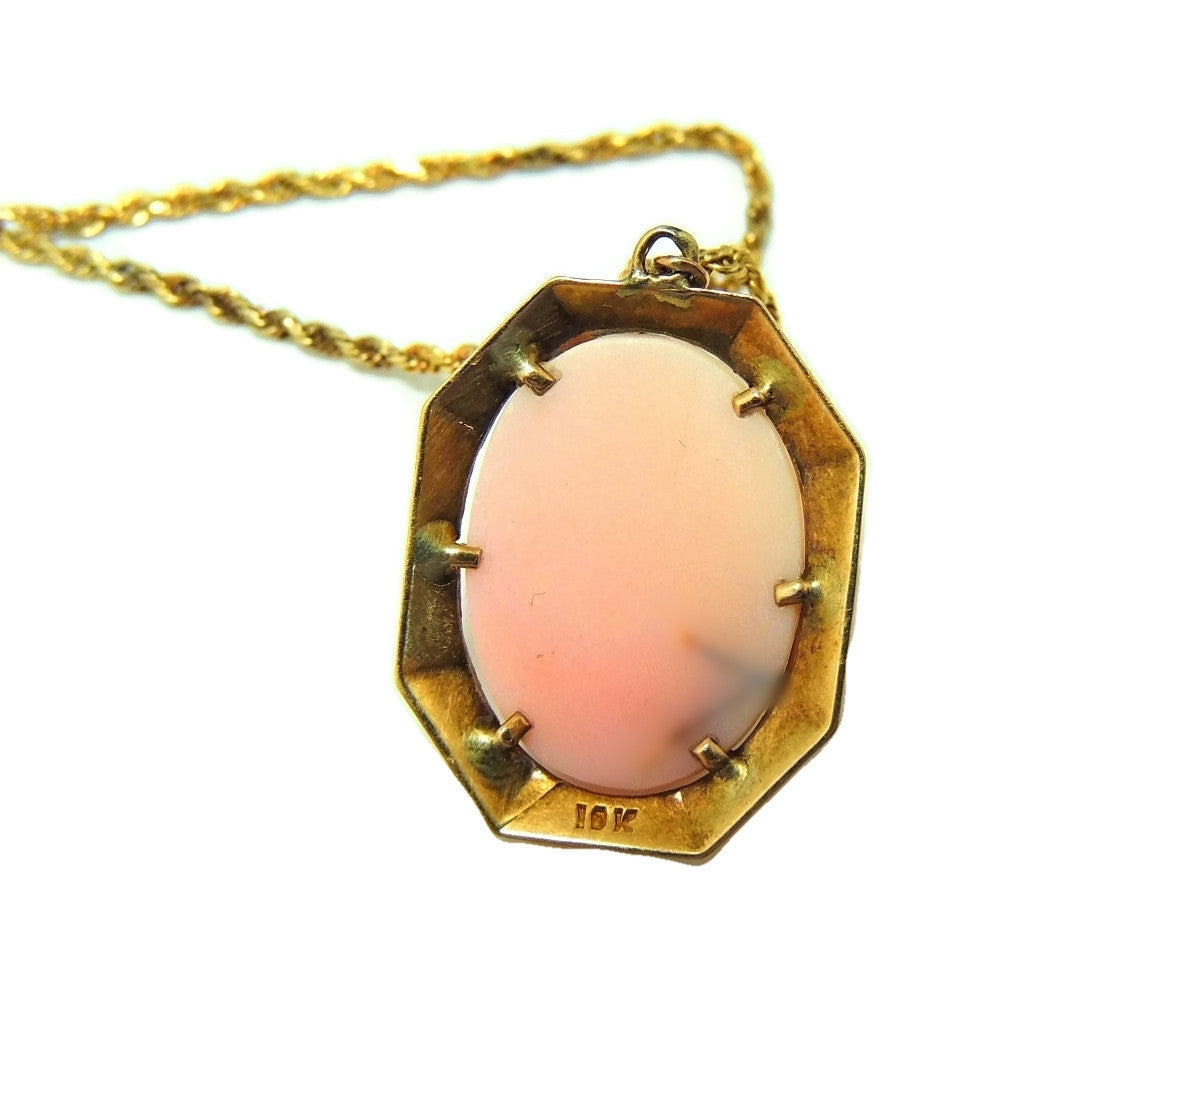 Antique pink cameo pendant 10k gold w 14k gold chain premier antique pink coral cameo pendant 10k gold w 14k gold chain premier estate gallery aloadofball Choice Image